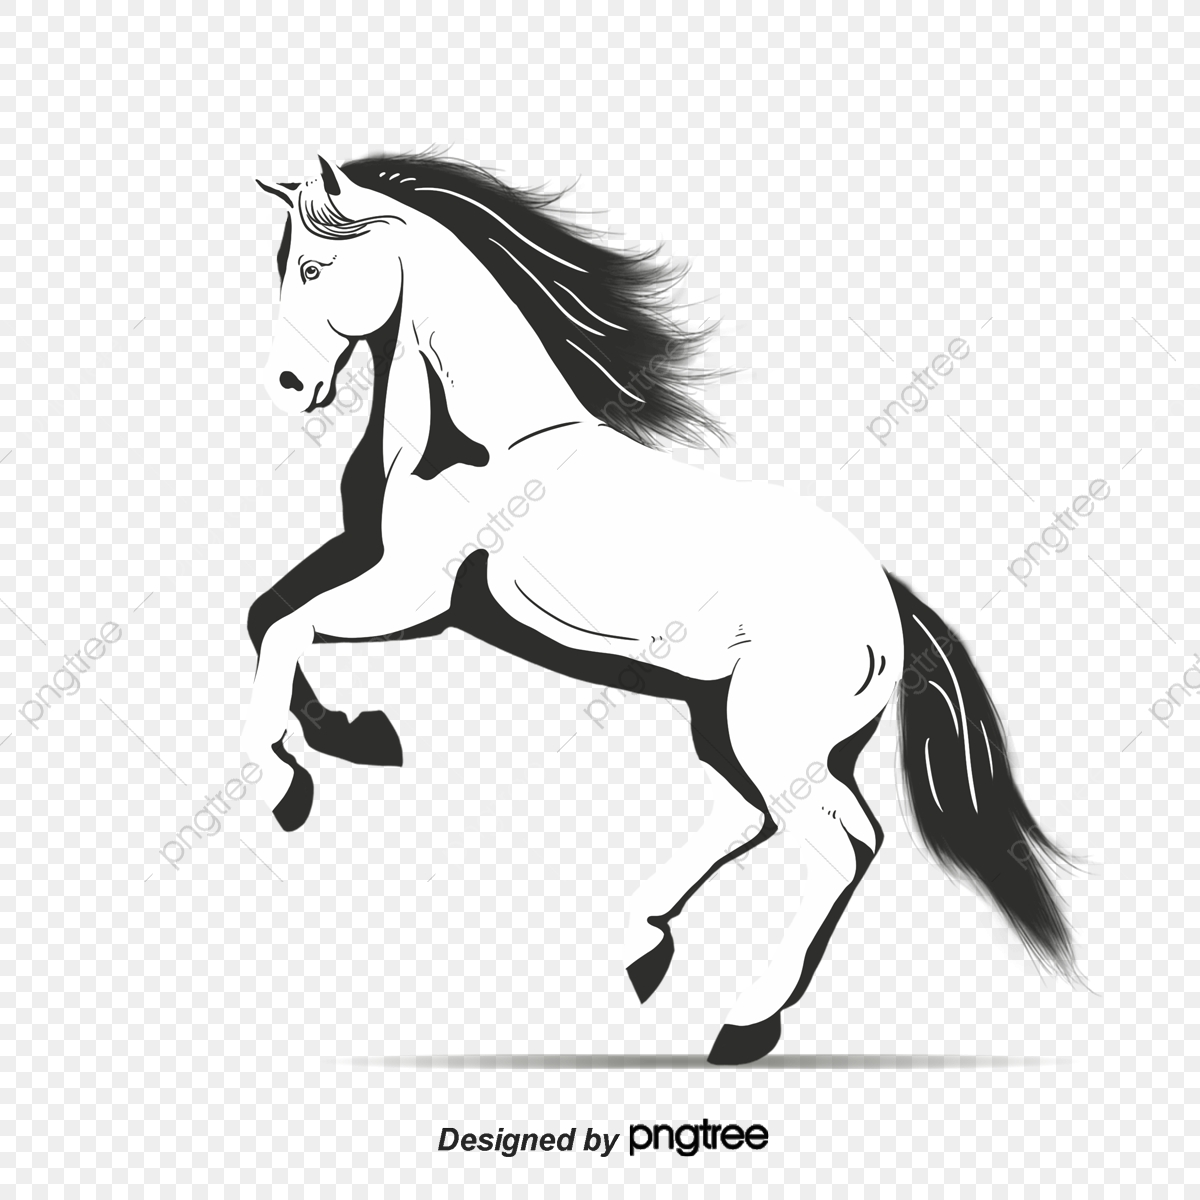 Black And White Running Horses Horse Clipart Black And White Animal Animal Illustration Png Transparent Clipart Image And Psd File For Free Download